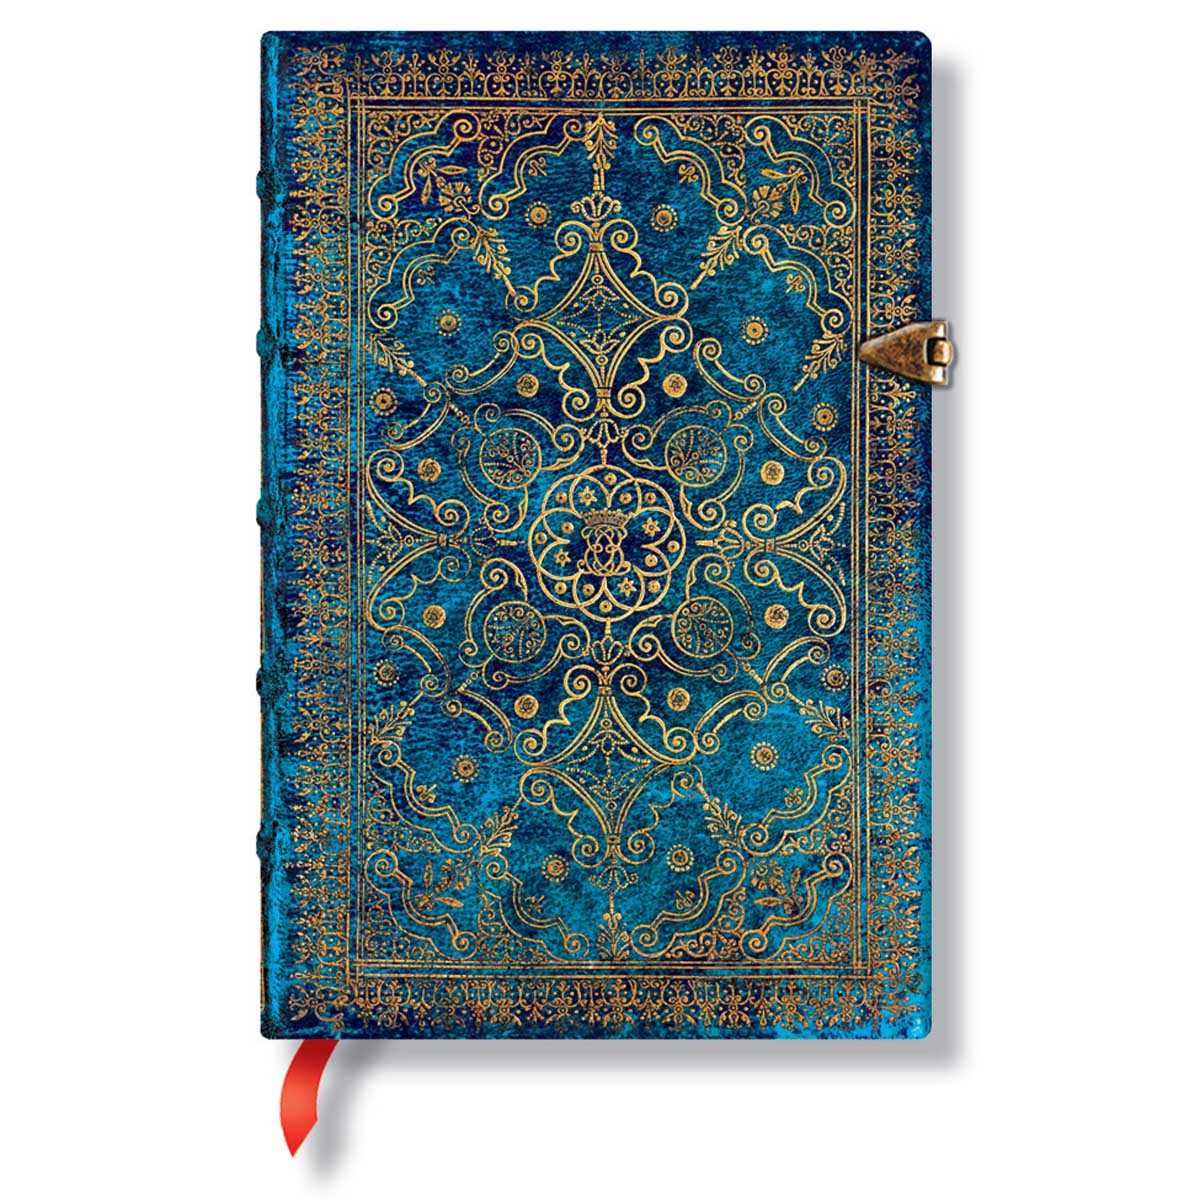 Paperblanks Equinoxe Azure Mini 3.75 x 5.5 Inch Journal